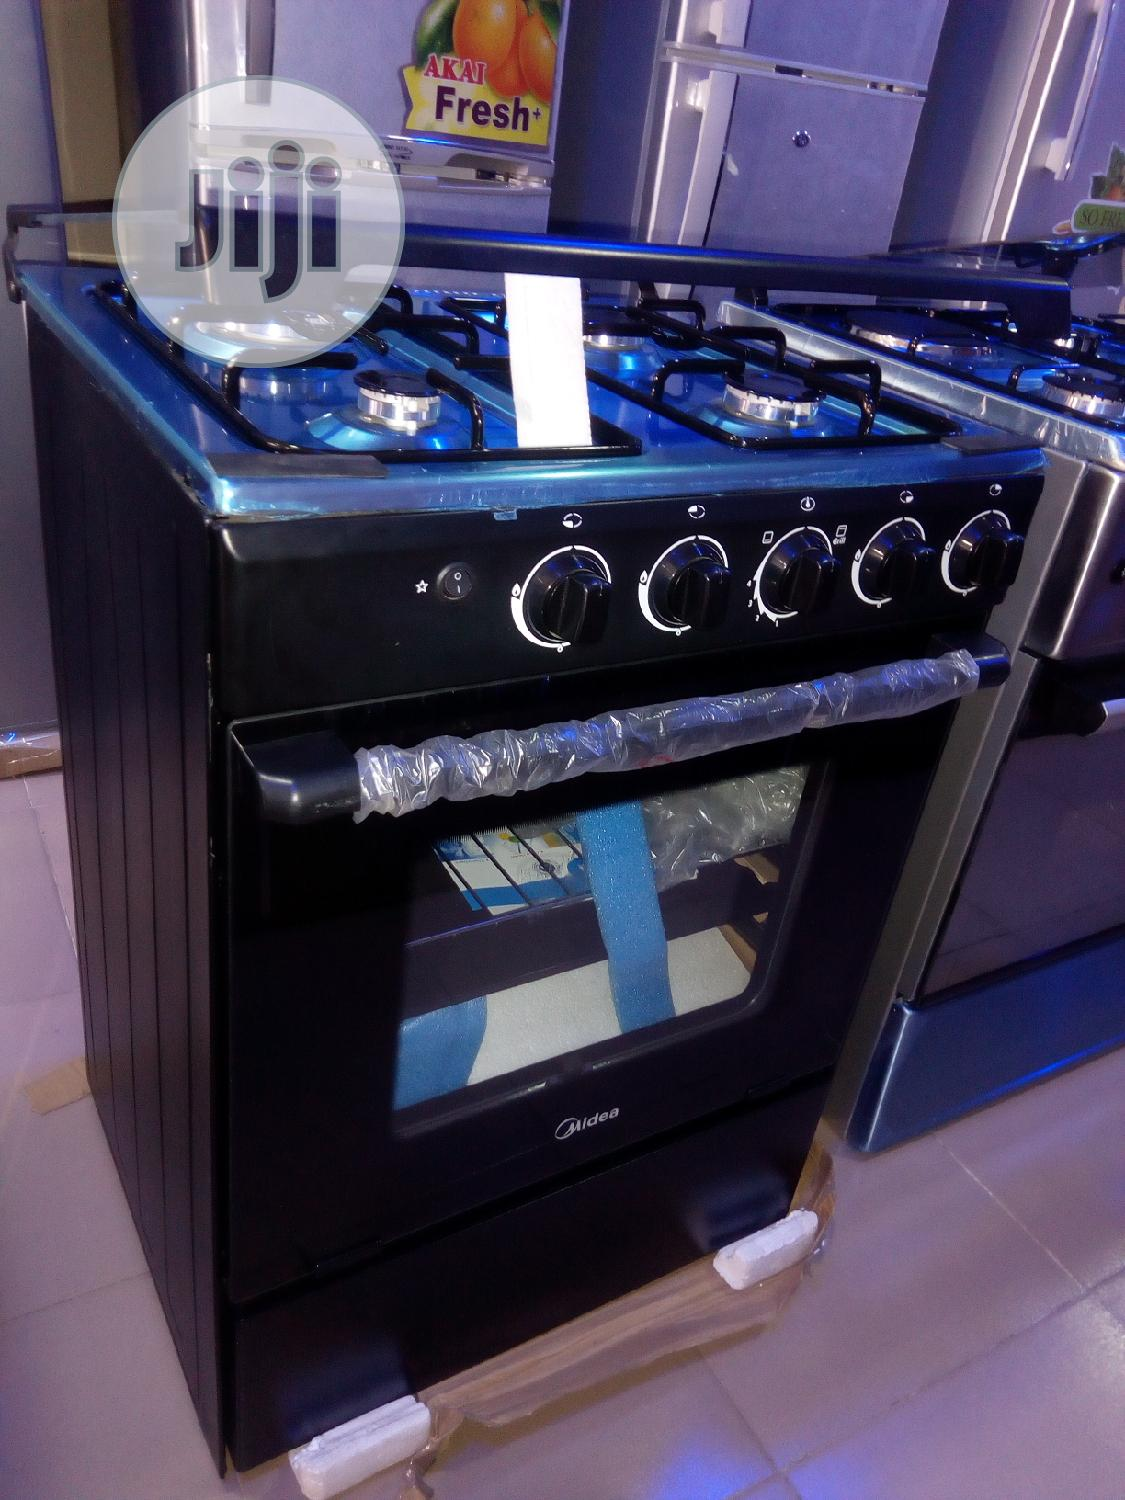 Midea 4 Burner Gas Cooker With Oven - Auto Ignition